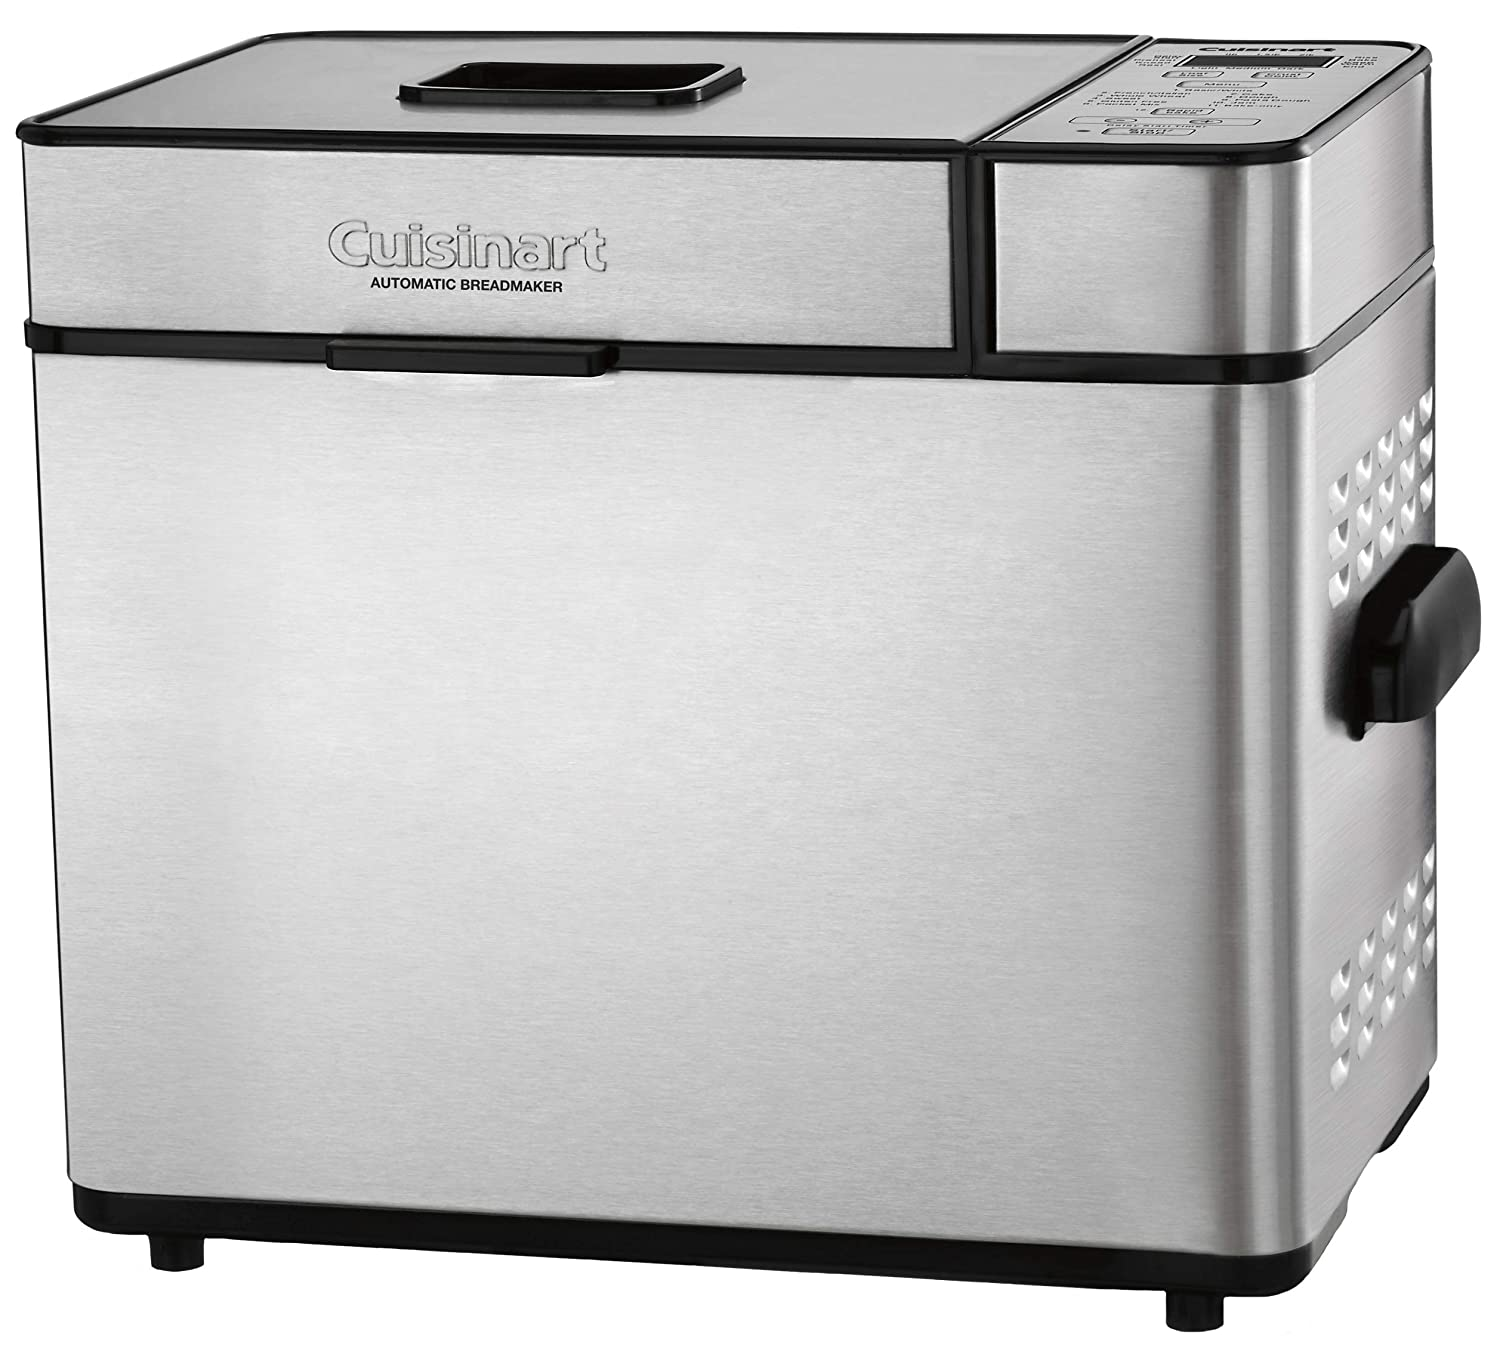 Cuisinart CBK-100SS Bread Maker, Automatic, Brushed Stainless